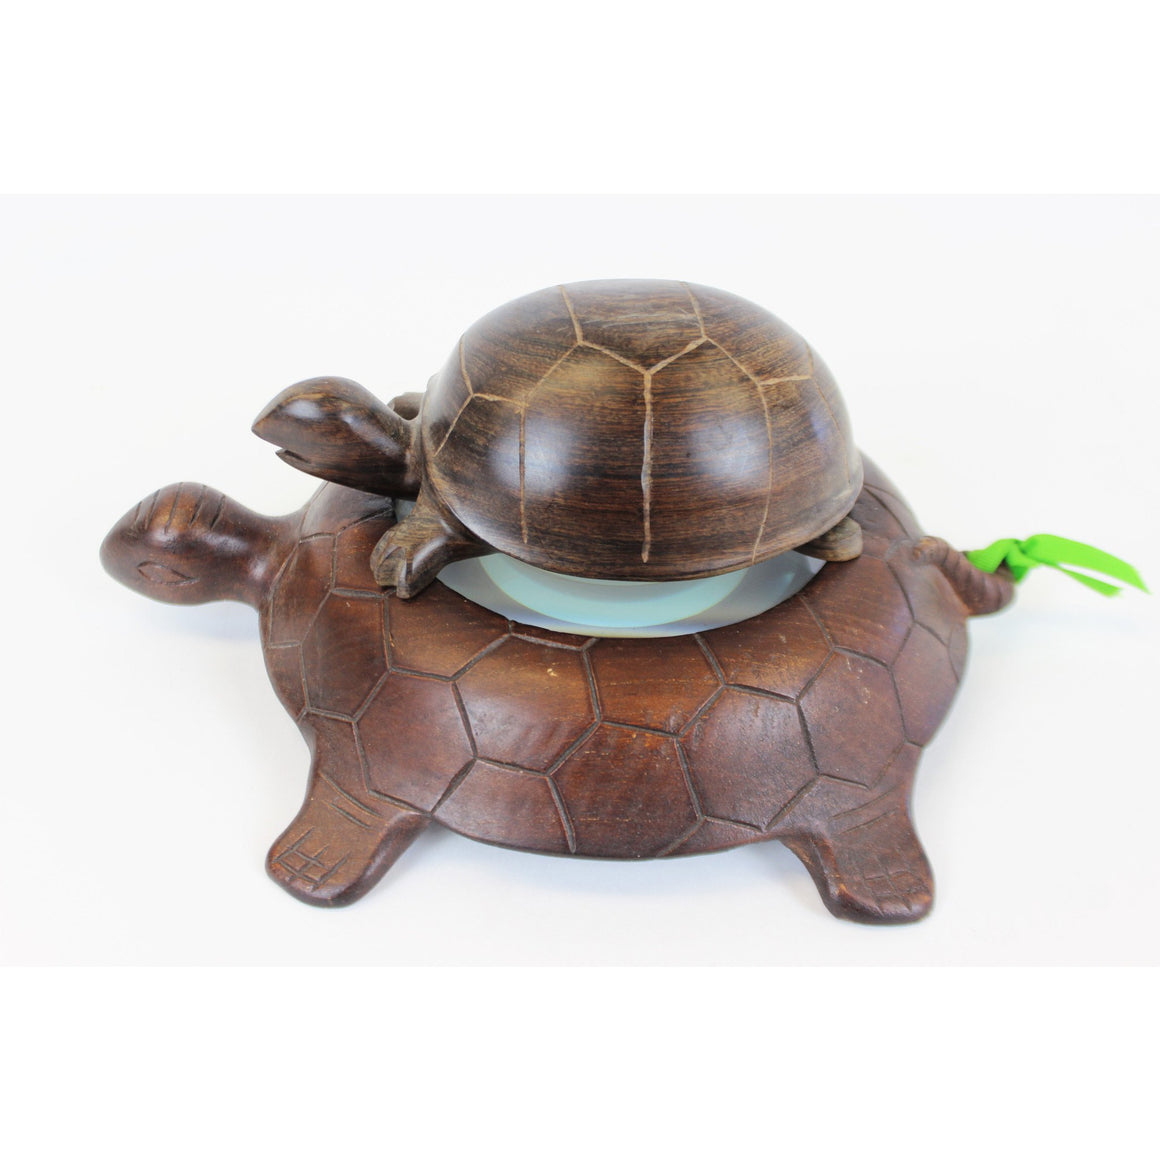 Nesting 2 Turtles w/ Inset Magnifying Glass